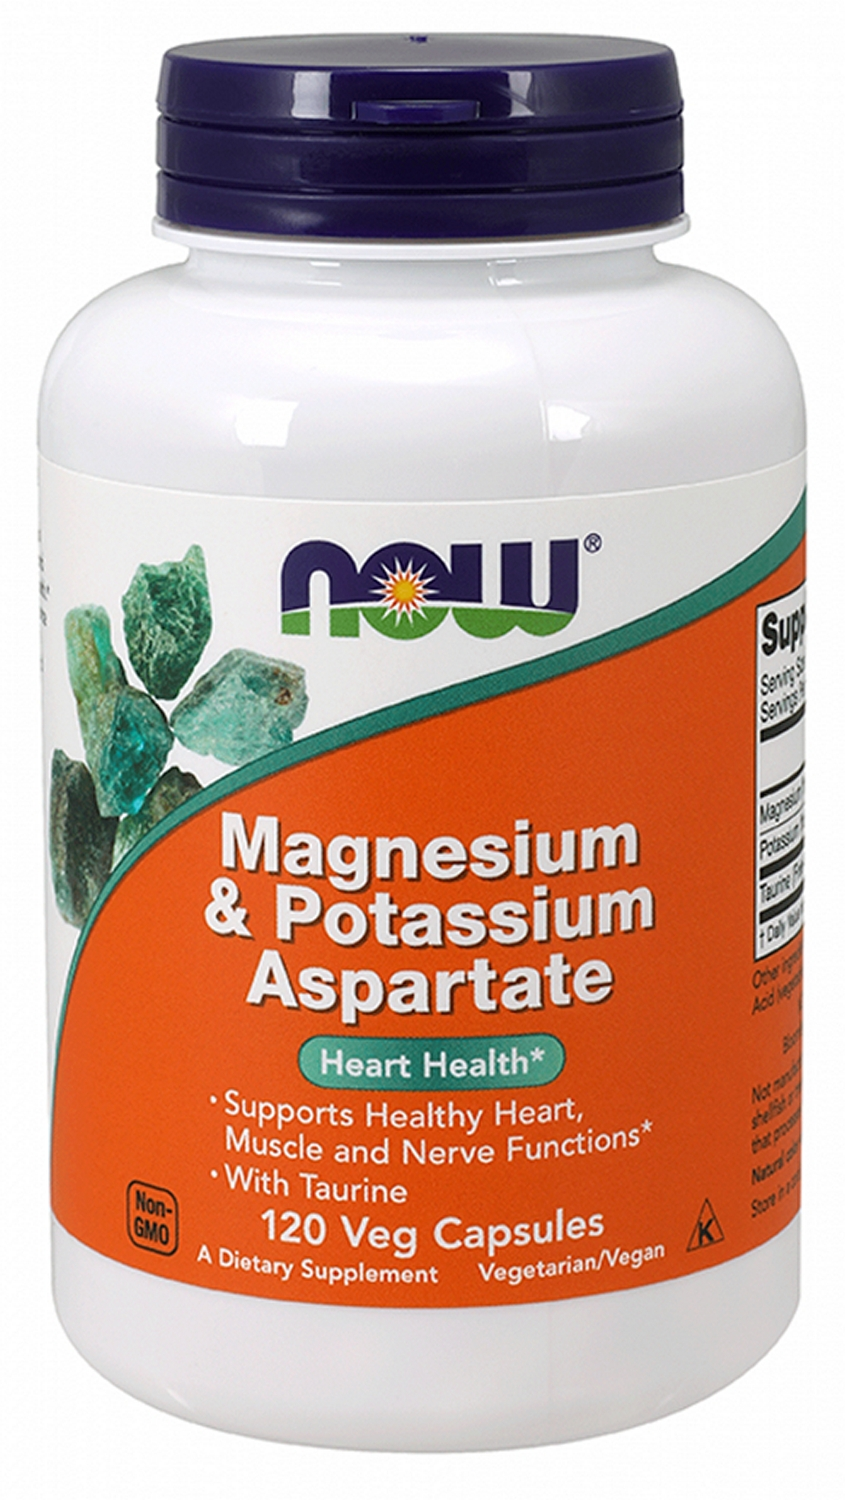 Magnesium & Potassium Aspartate w/ Taurine 120 caps by NOW